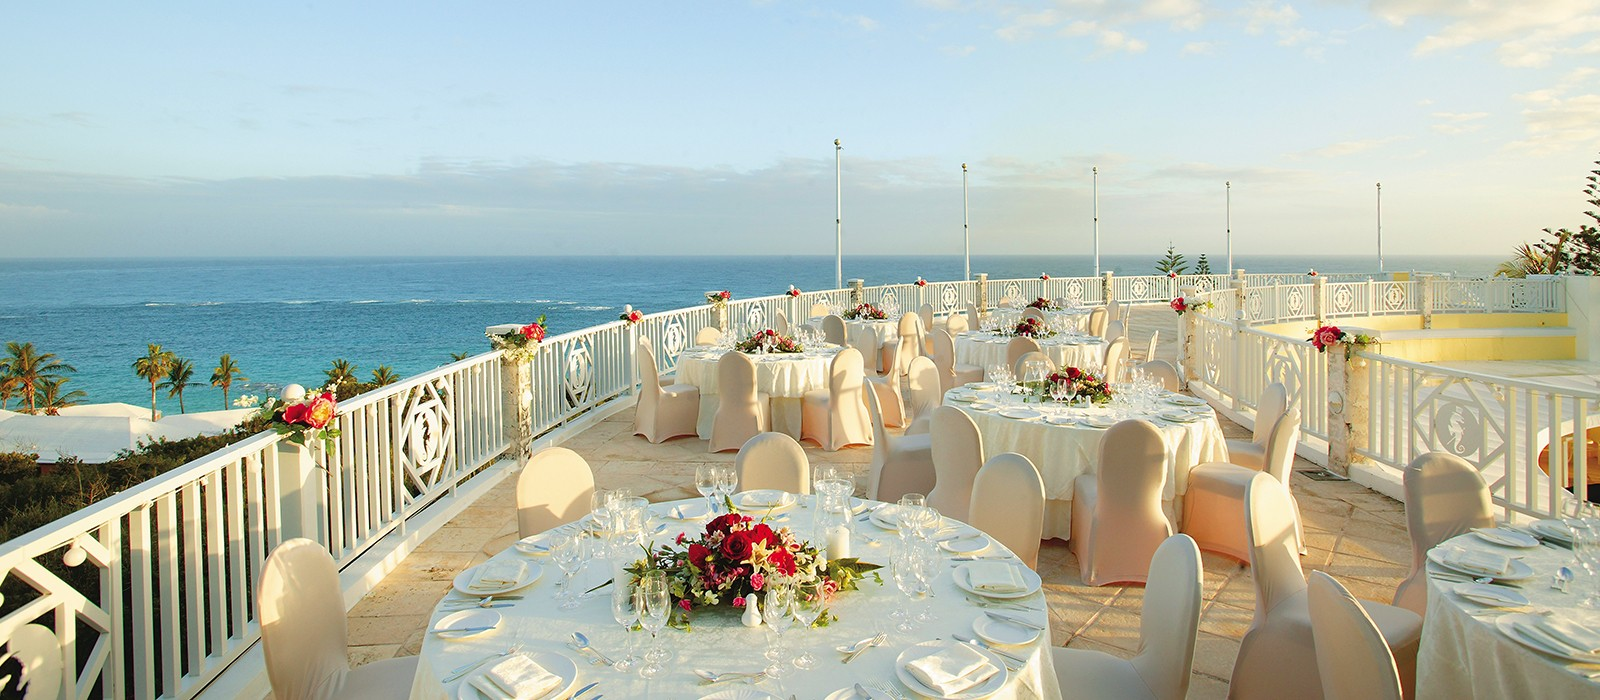 Elbow Beach Balcony Perfect For Events Of All Sizes In Bermuda